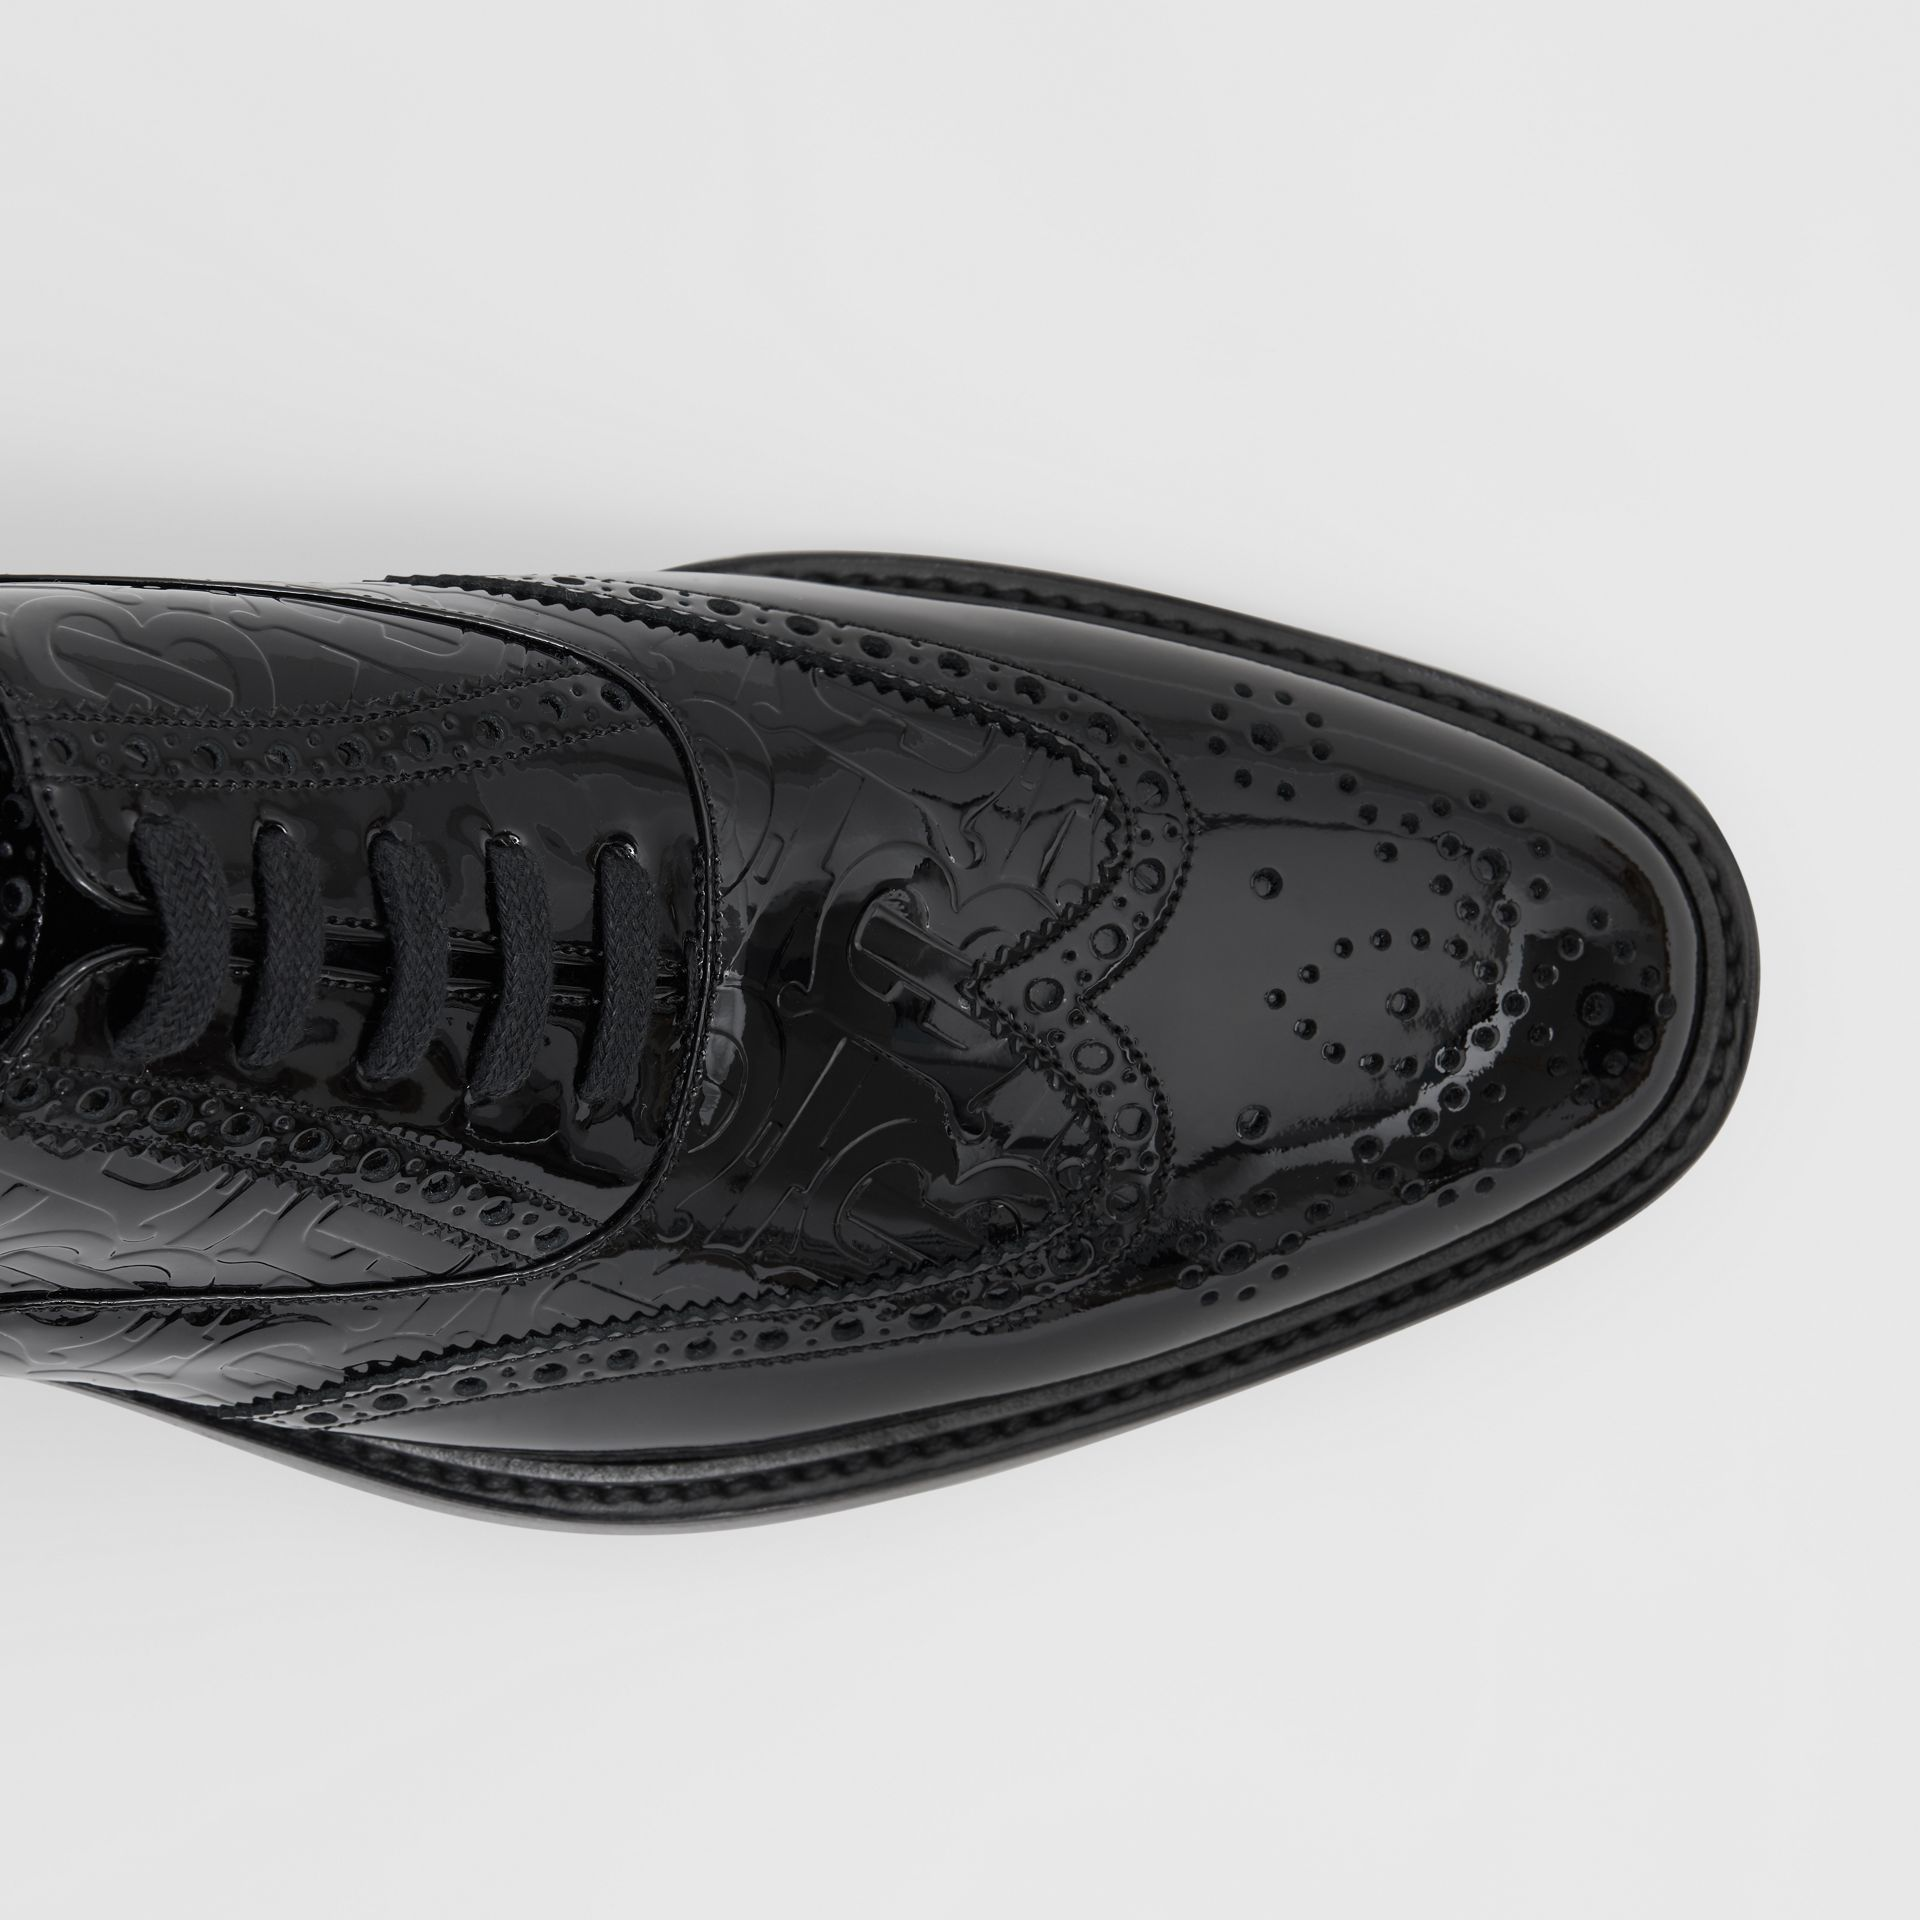 D-ring Detail Monogram Patent Leather Brogues in Black - Men | Burberry Hong Kong S.A.R - gallery image 1